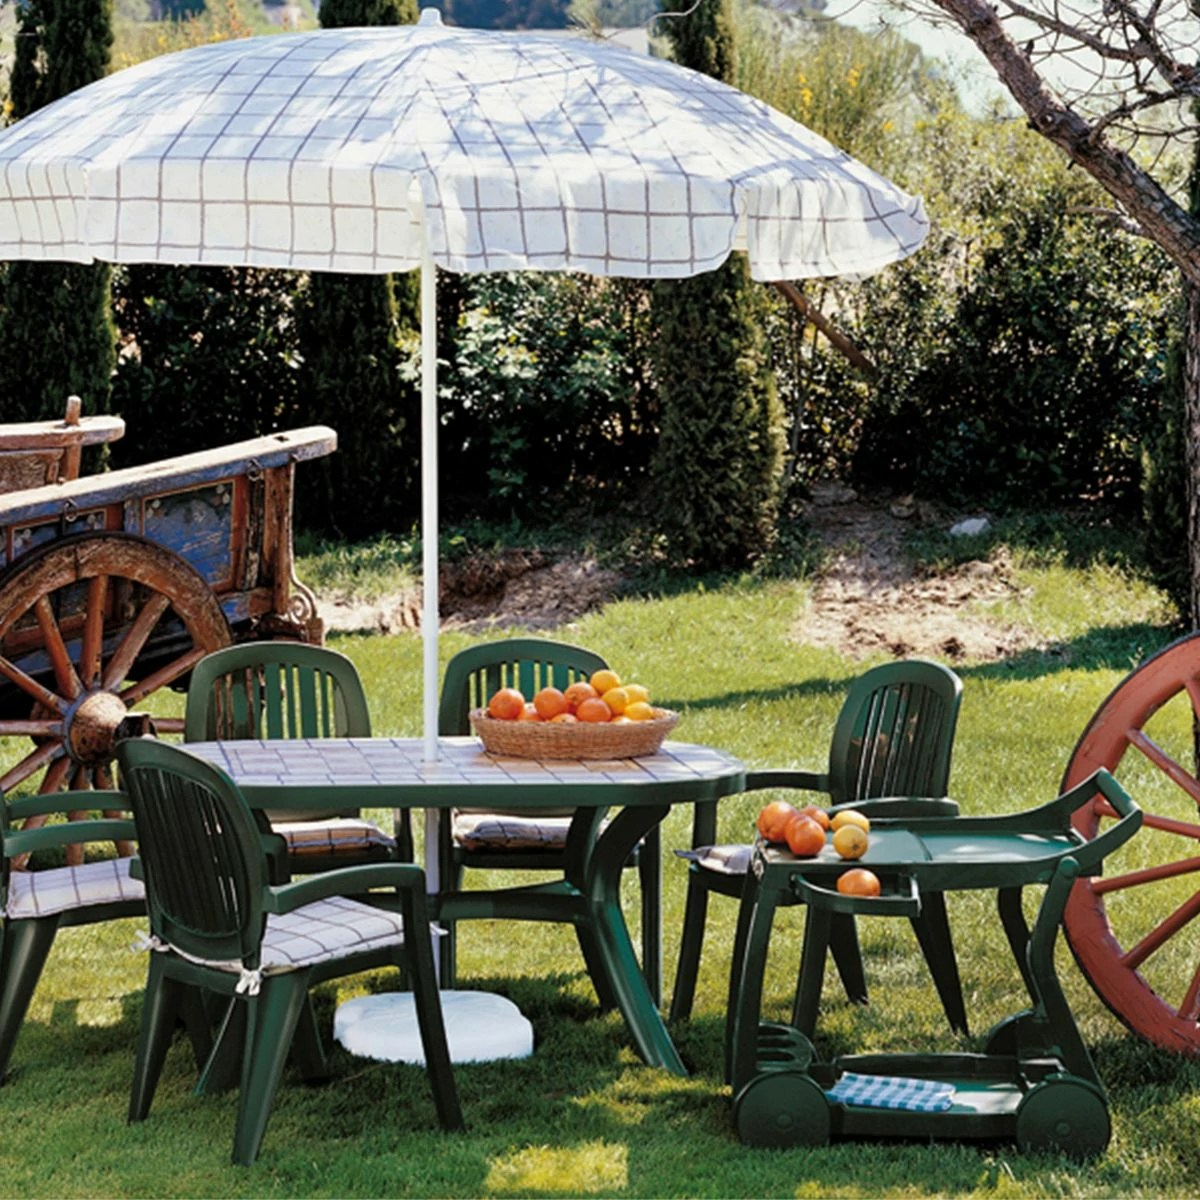 Table Roulante De Jardin Table Roulante Jardin And Terrasse Nardi Galileo Zendart